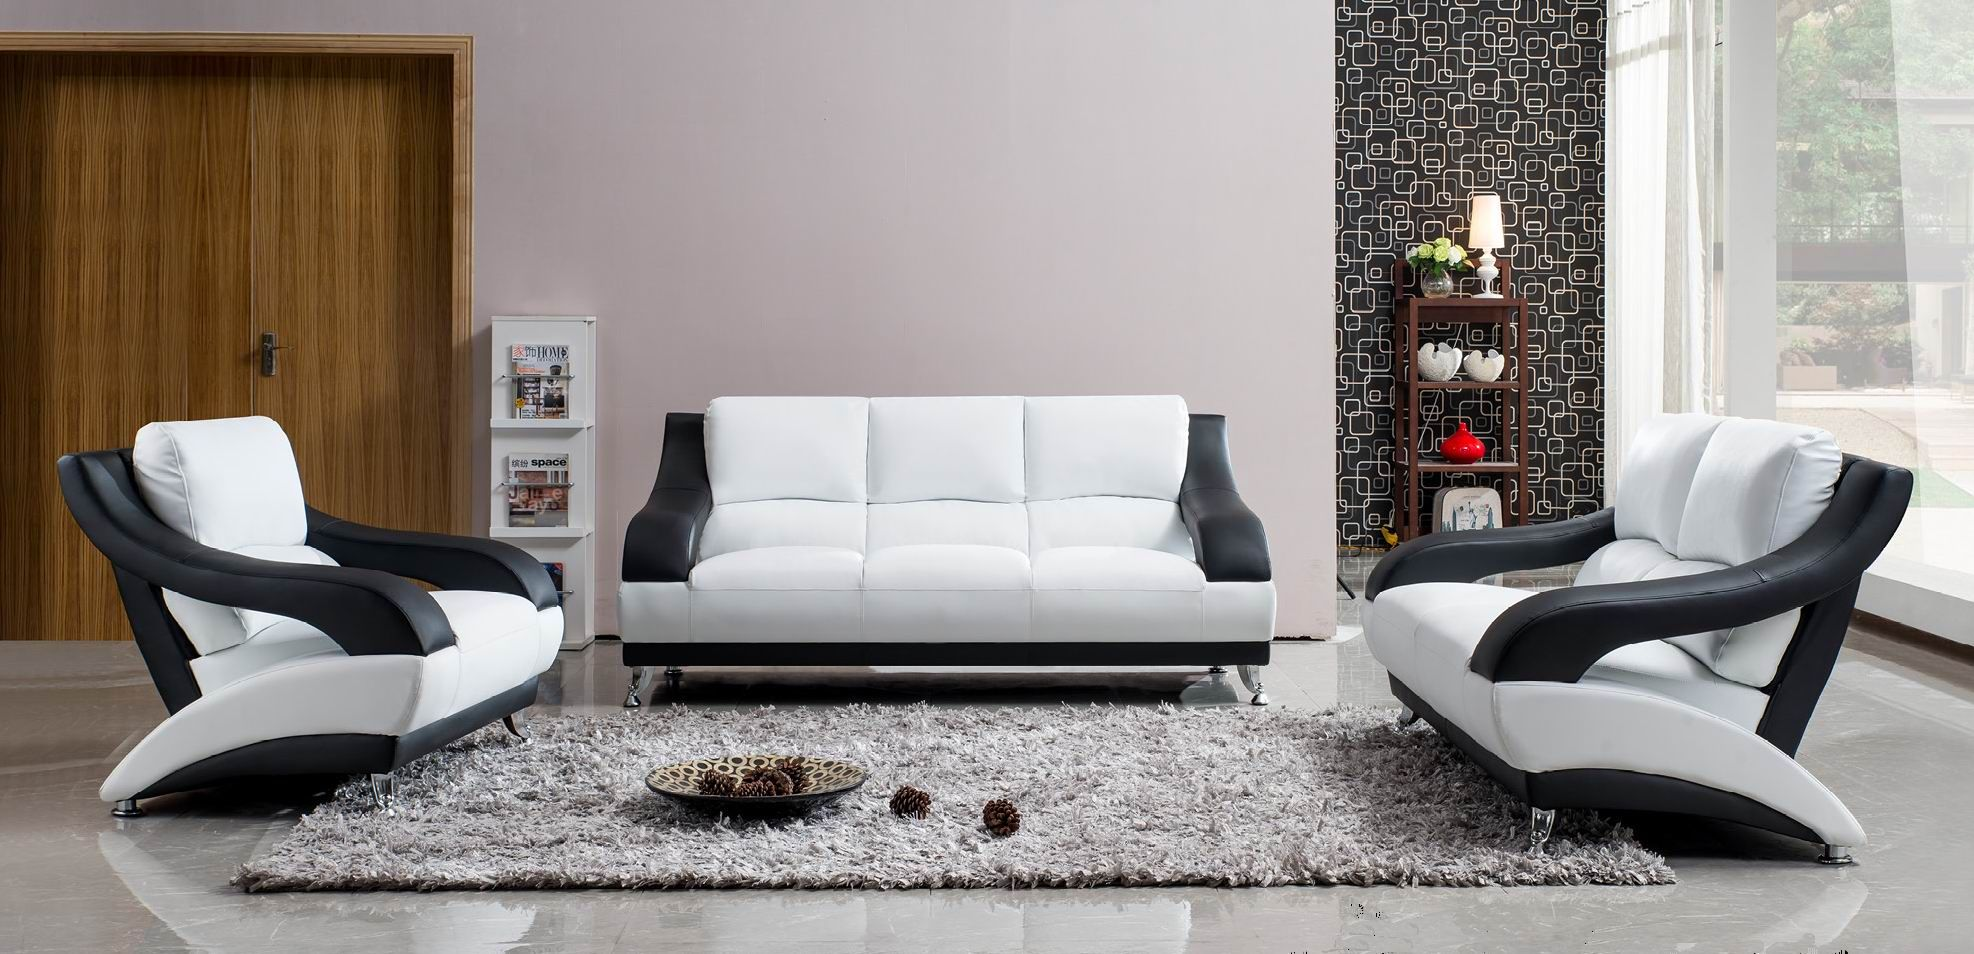 White Leather Sofa Set With Black Accents White Living Room Set